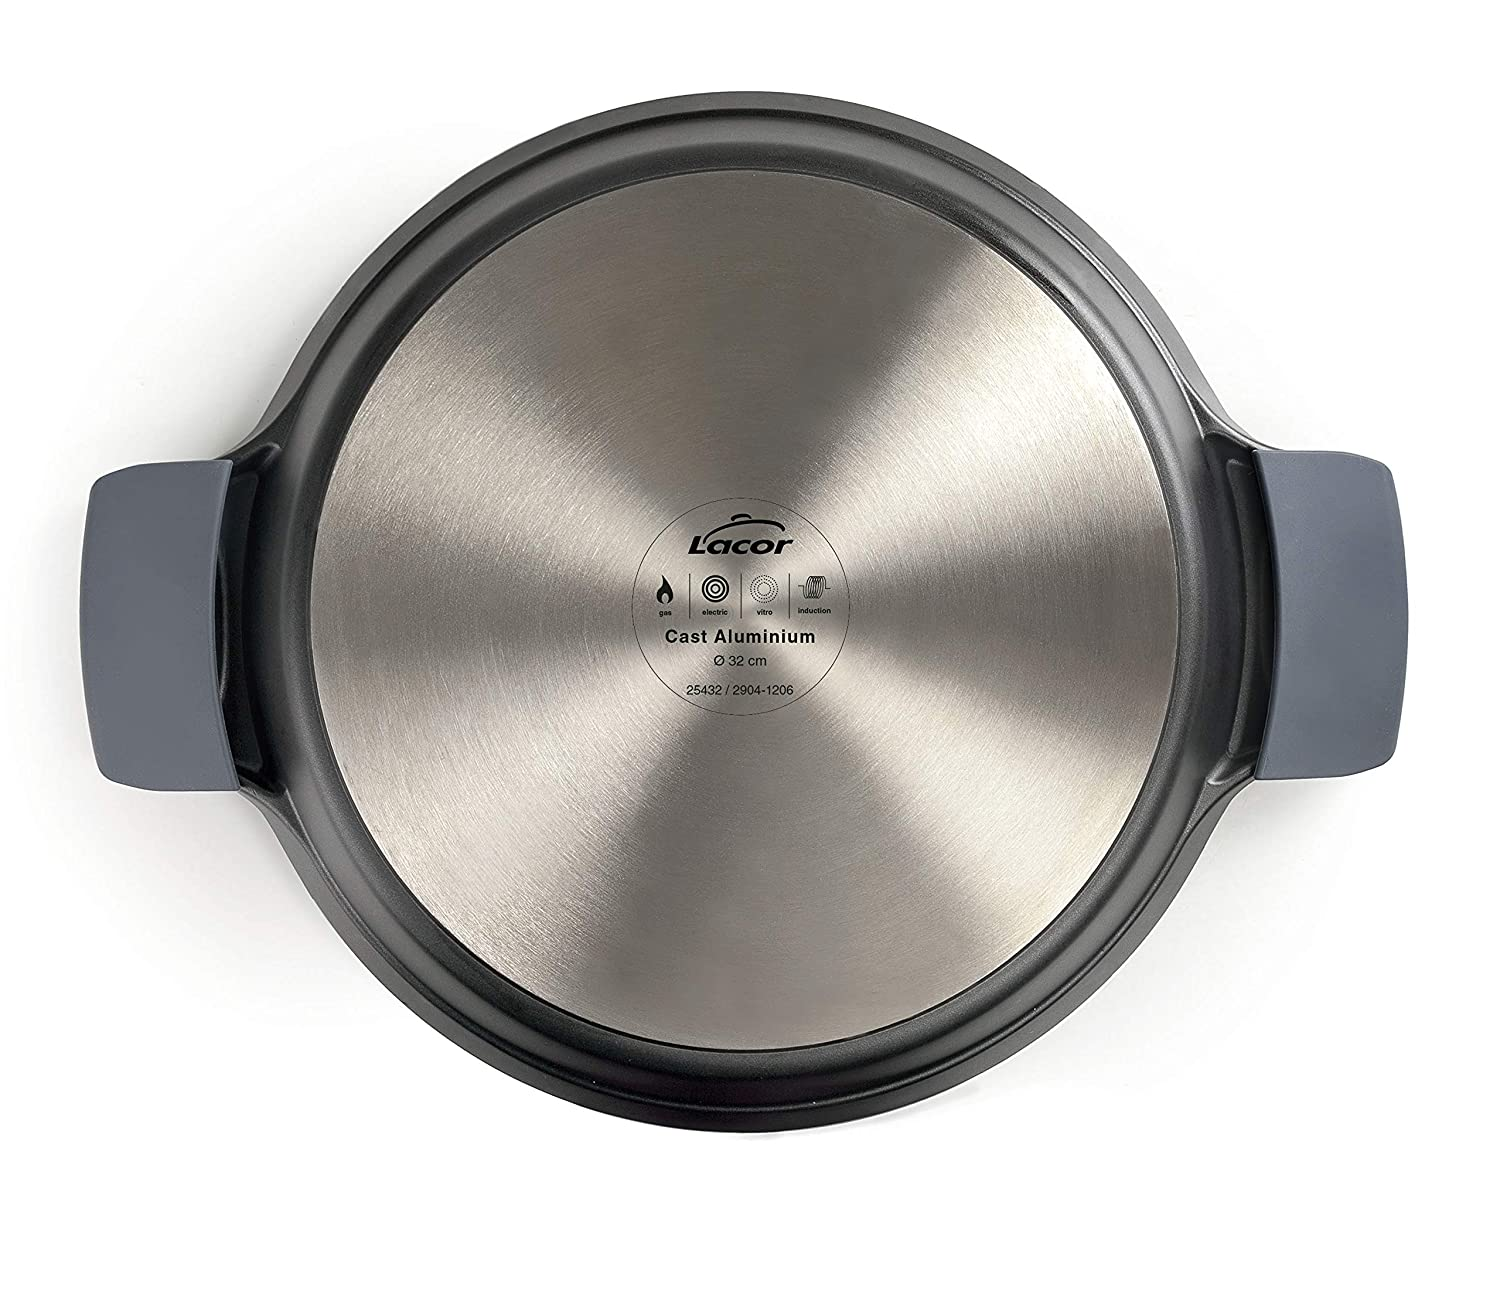 Amazon.com: Lacor 25440 Paella Pan with Silicone Handles ...